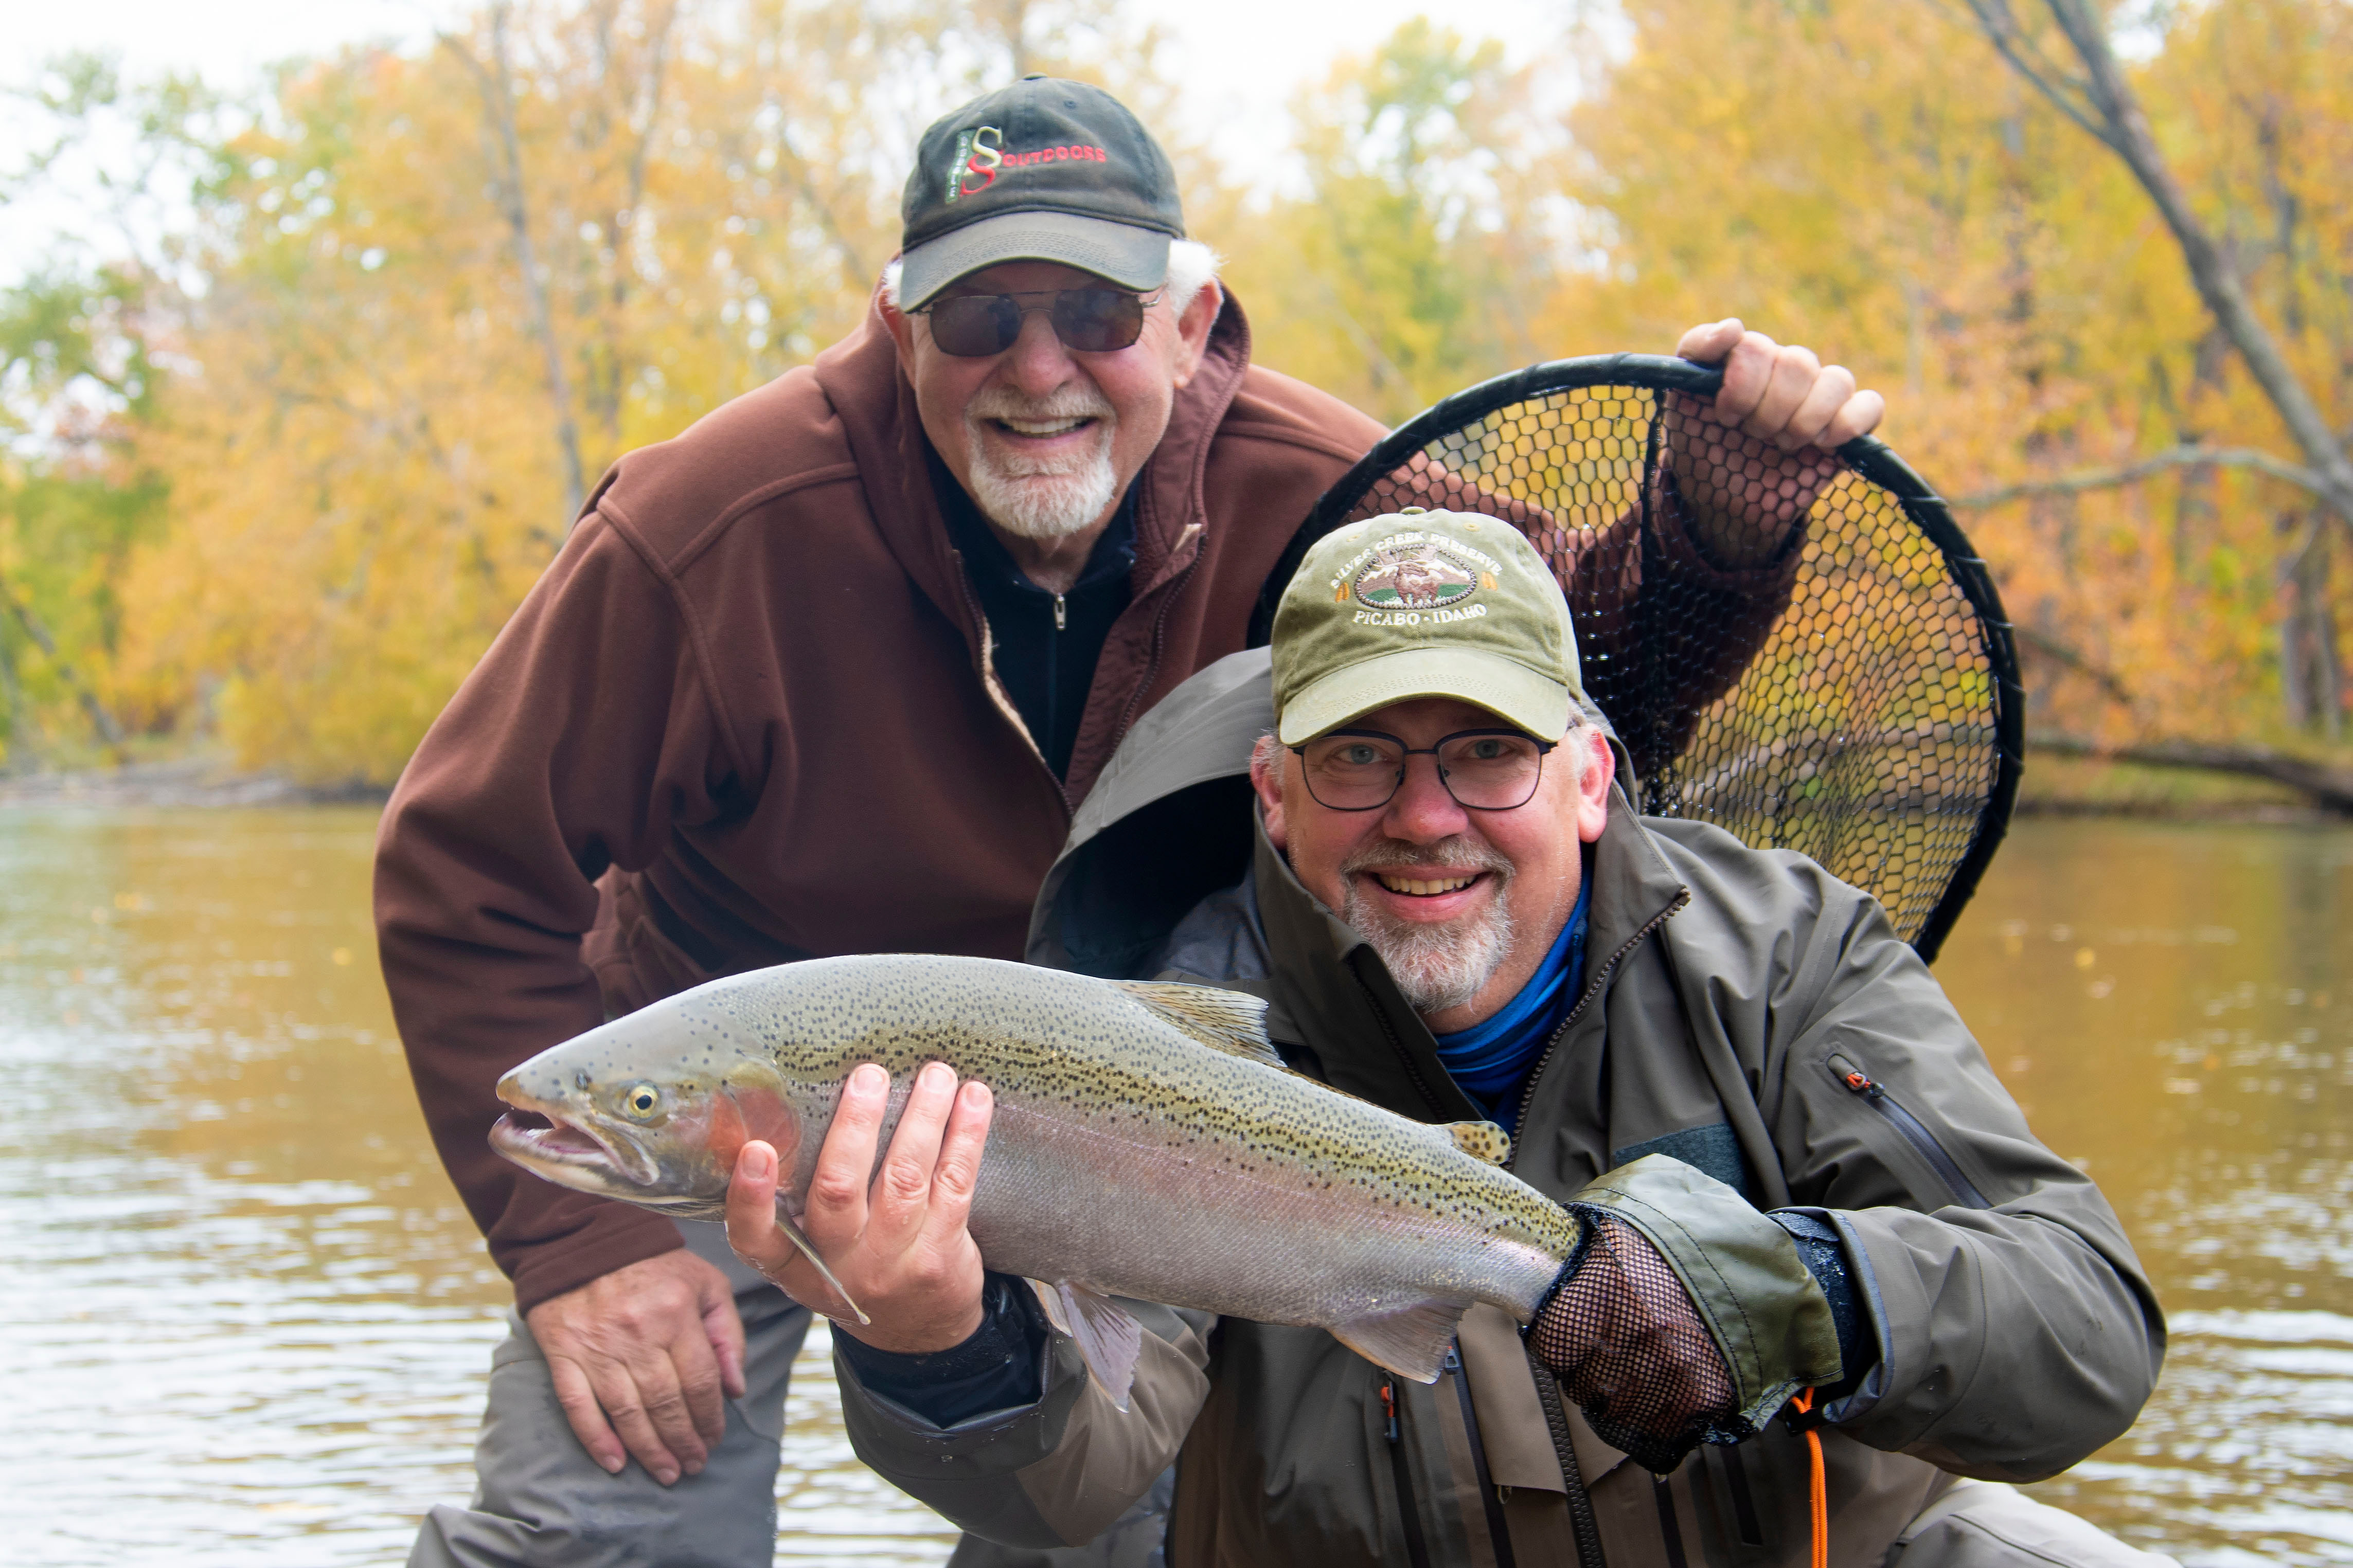 Full Day of Guided Fly Fishing with Ray